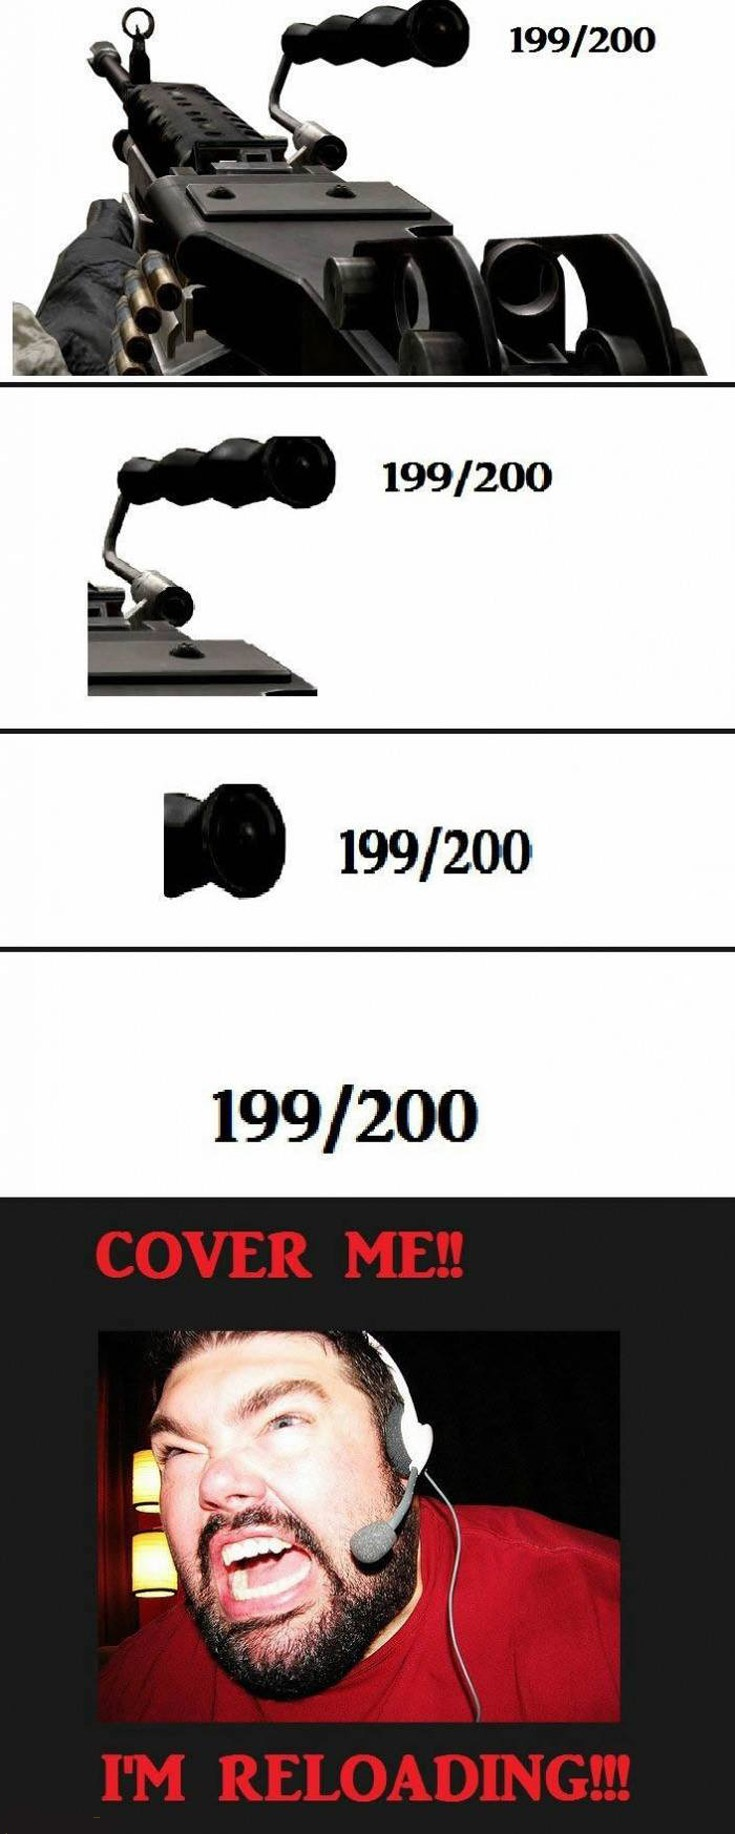 132840-cover-me-im-reloading-199-out-of-